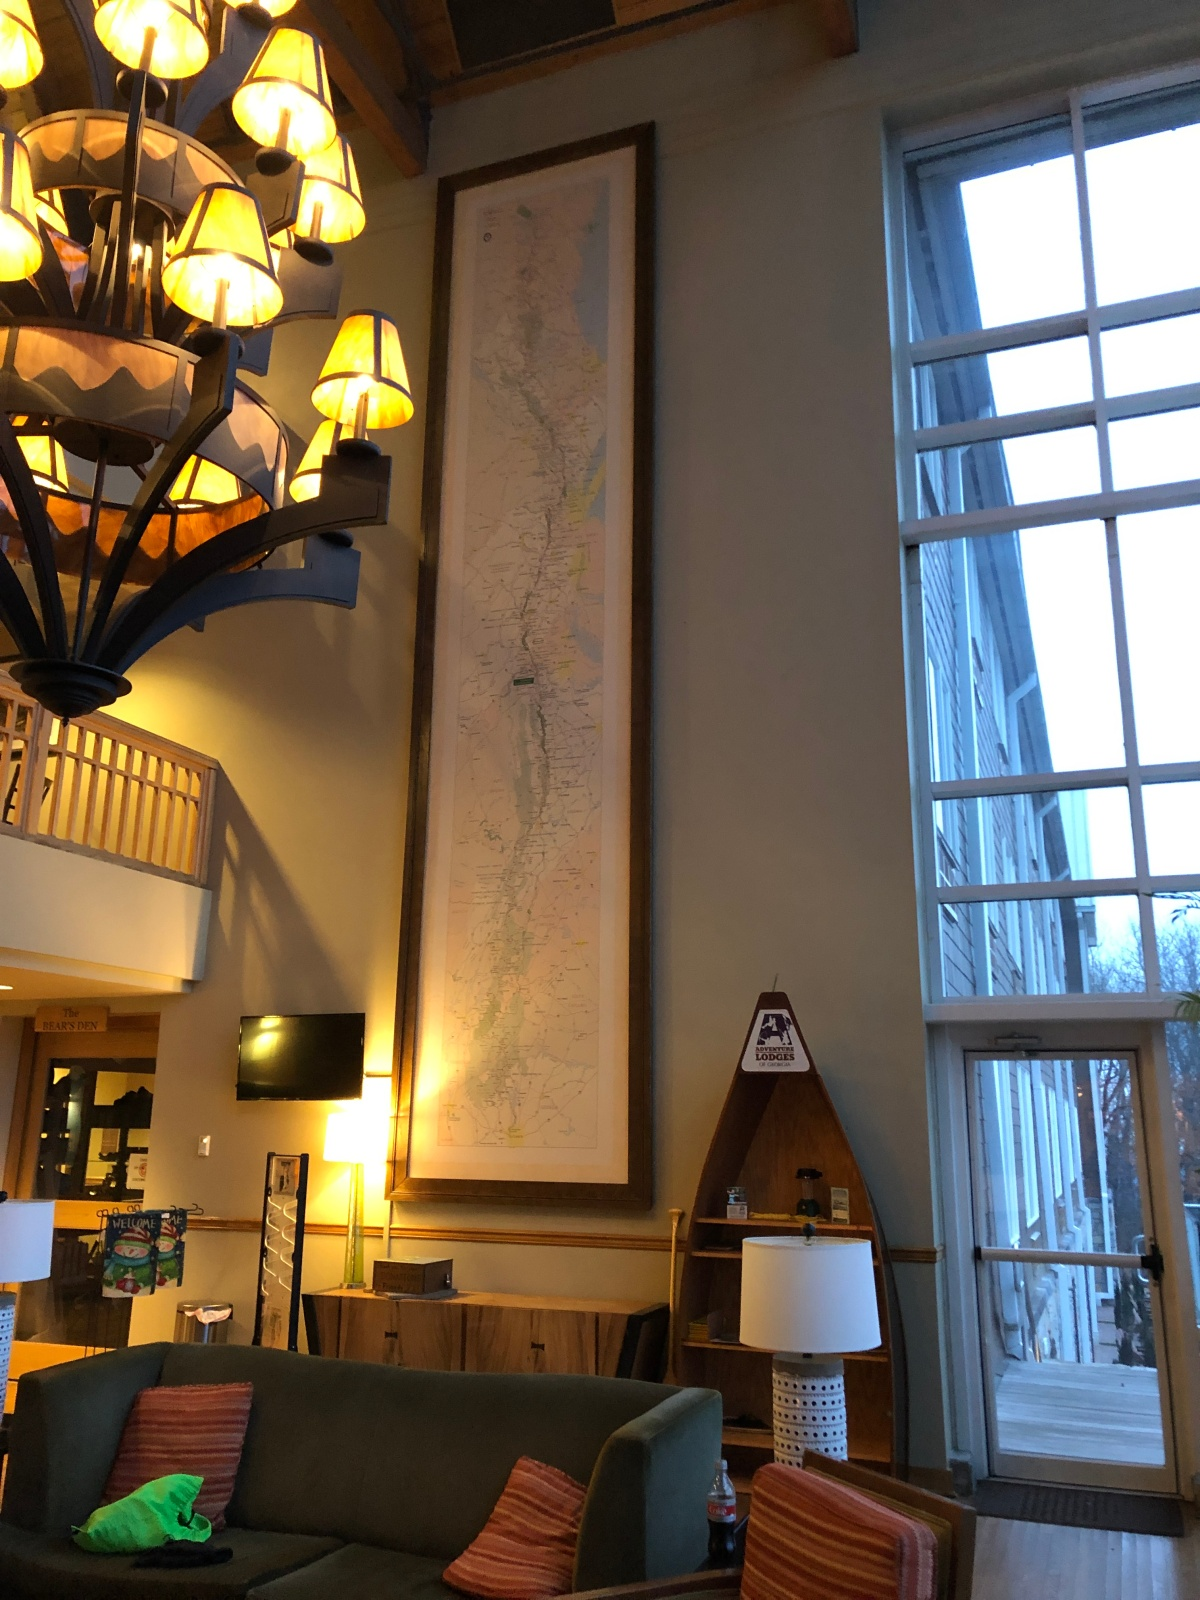 The Lodge lobby with the map of the AT on the wall